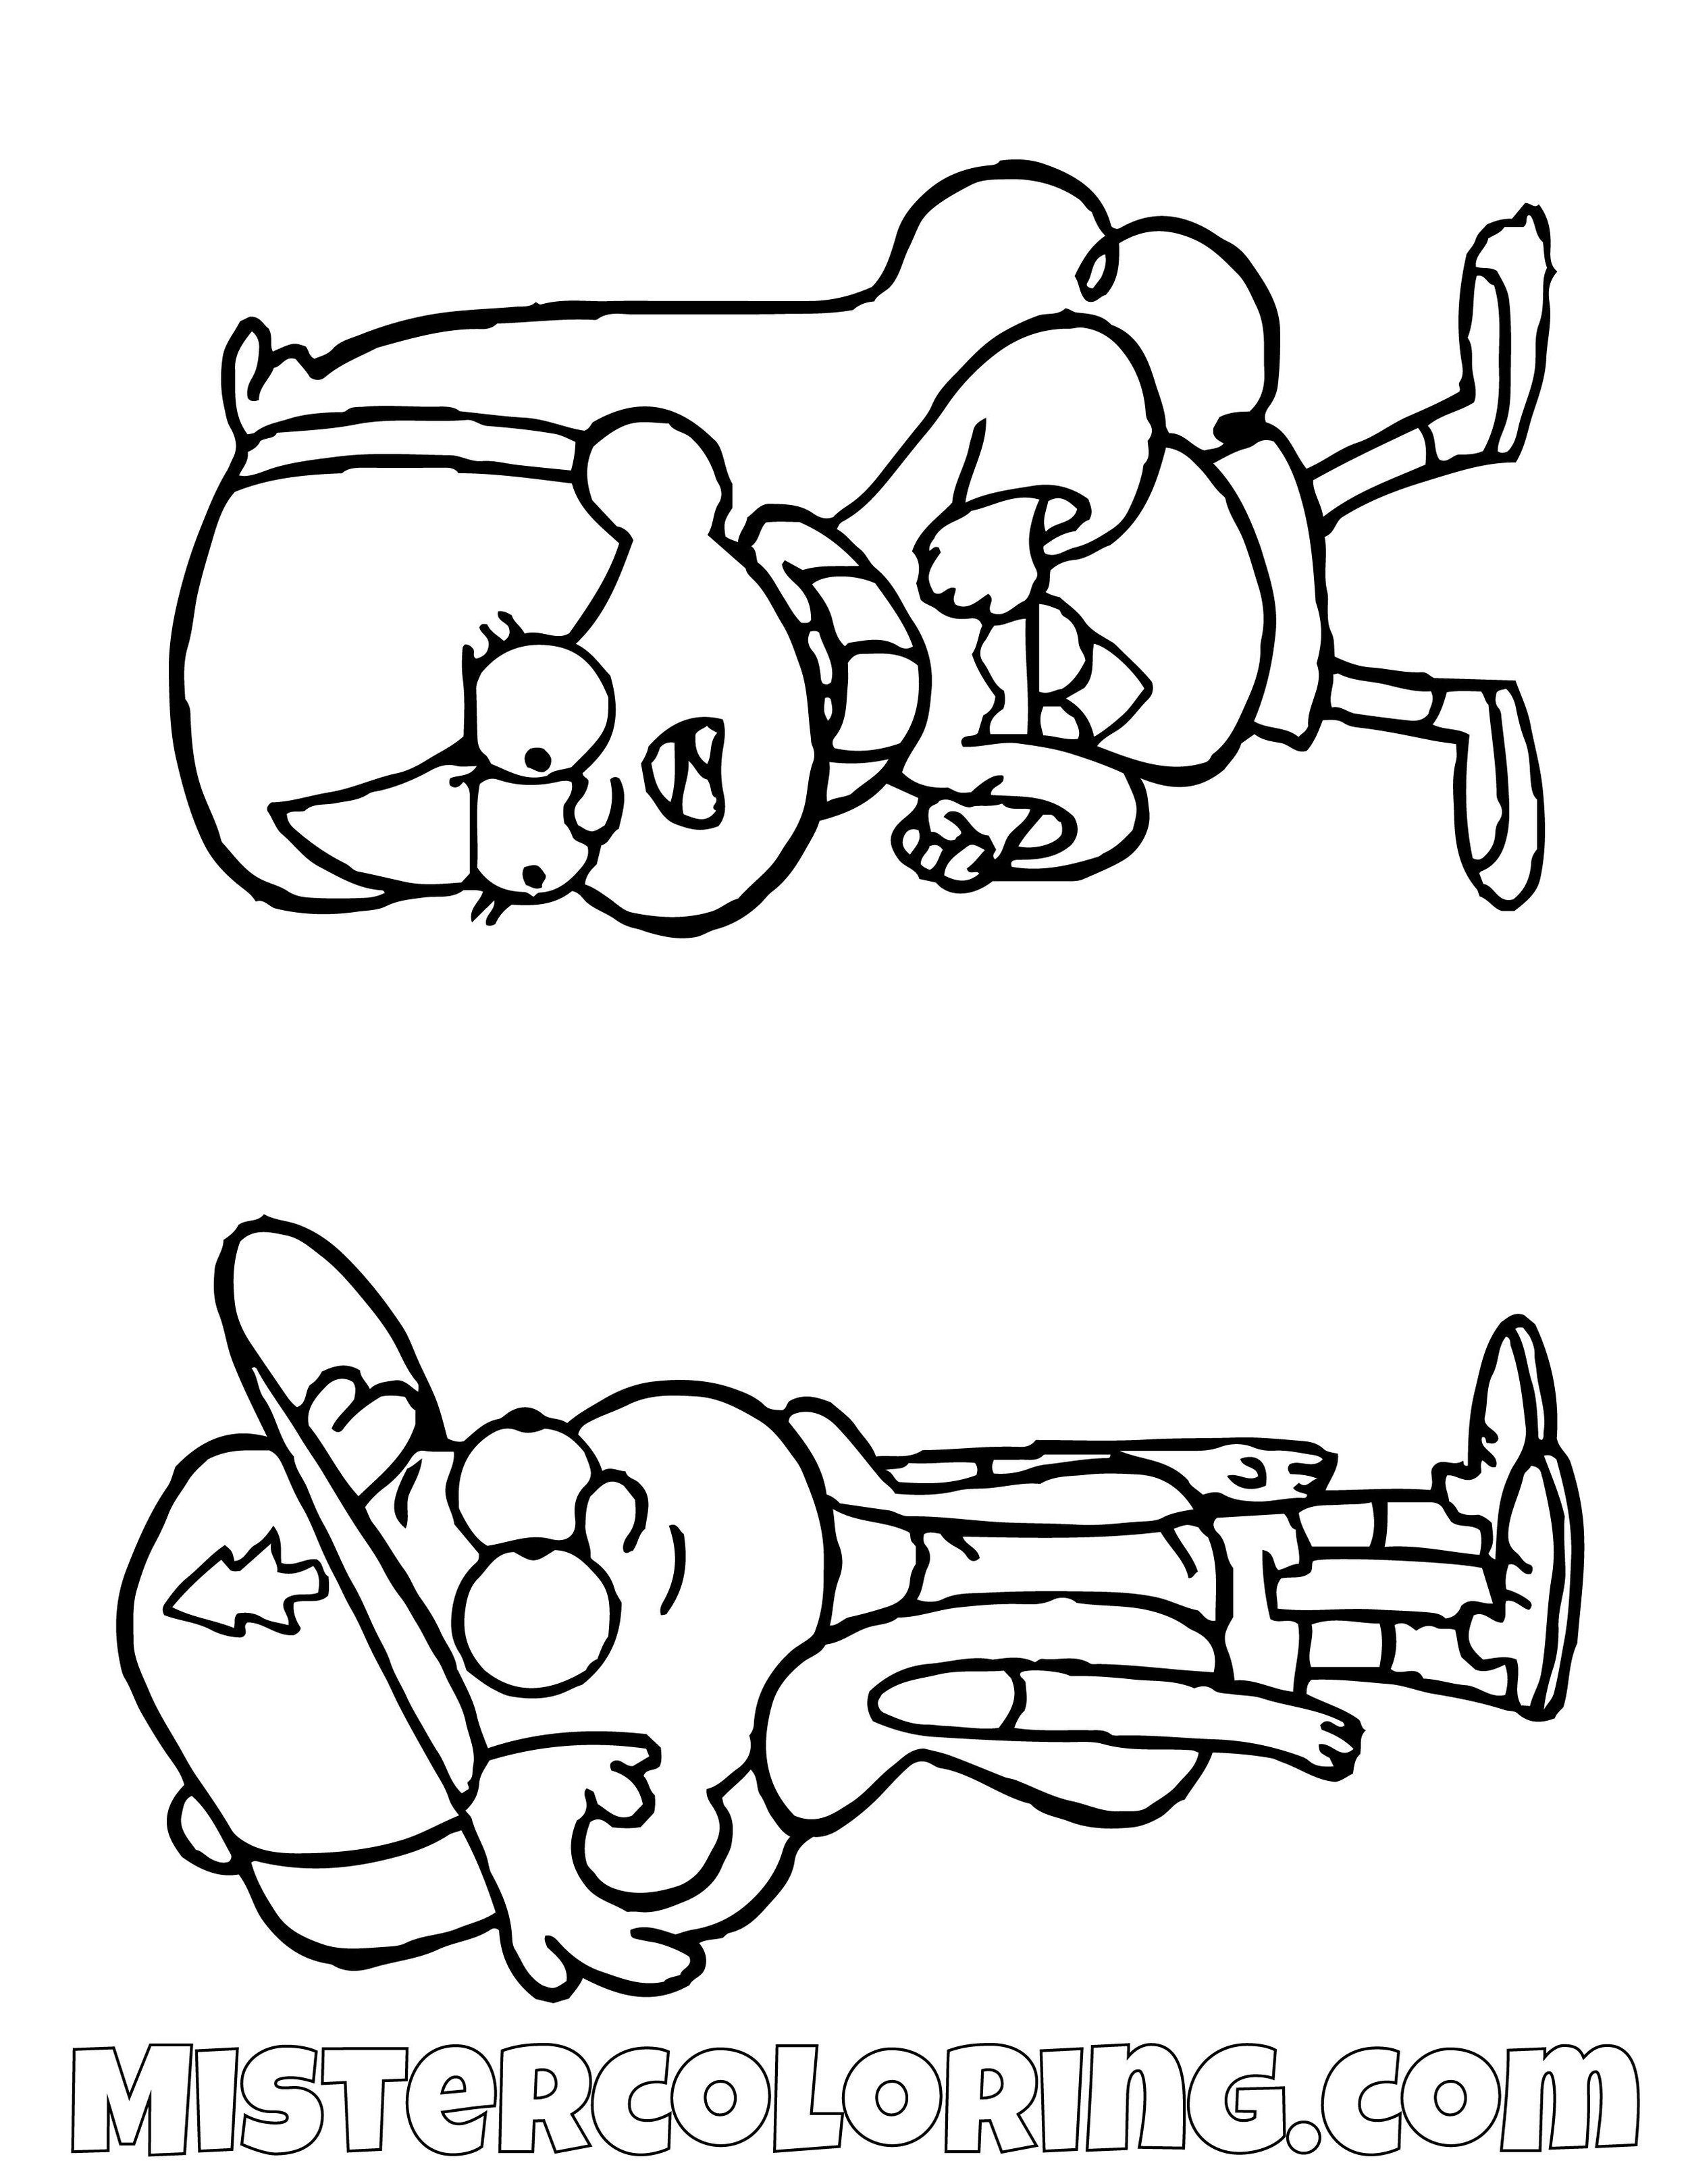 Dipper And Mabel Pines Mad Gravity Falls Coloring Pages